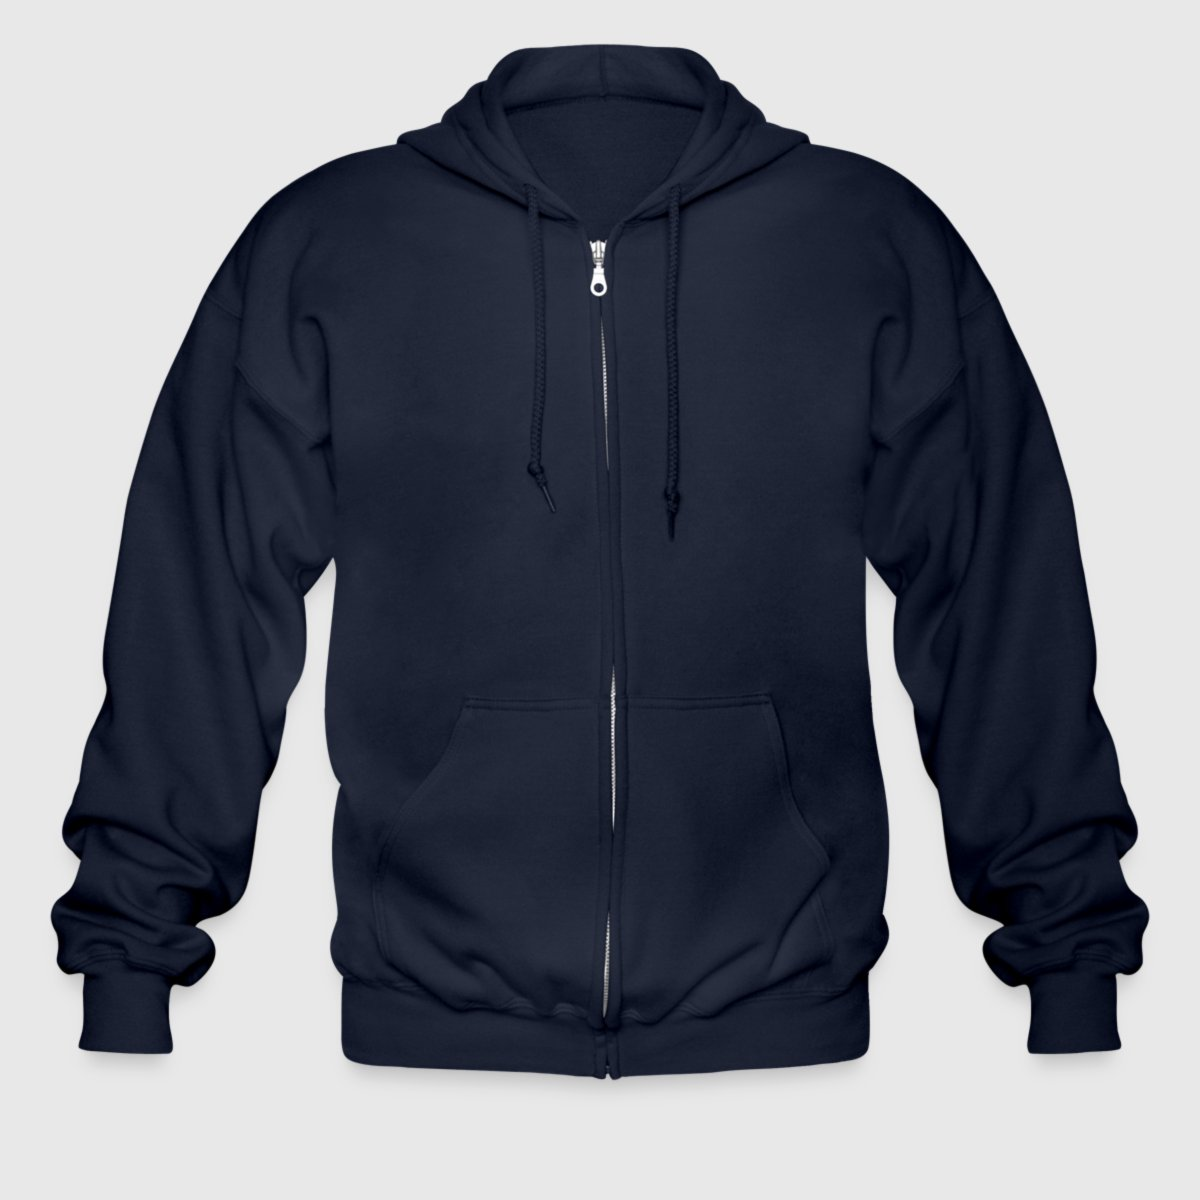 Men's Heavyweight Hooded Jacket - Front